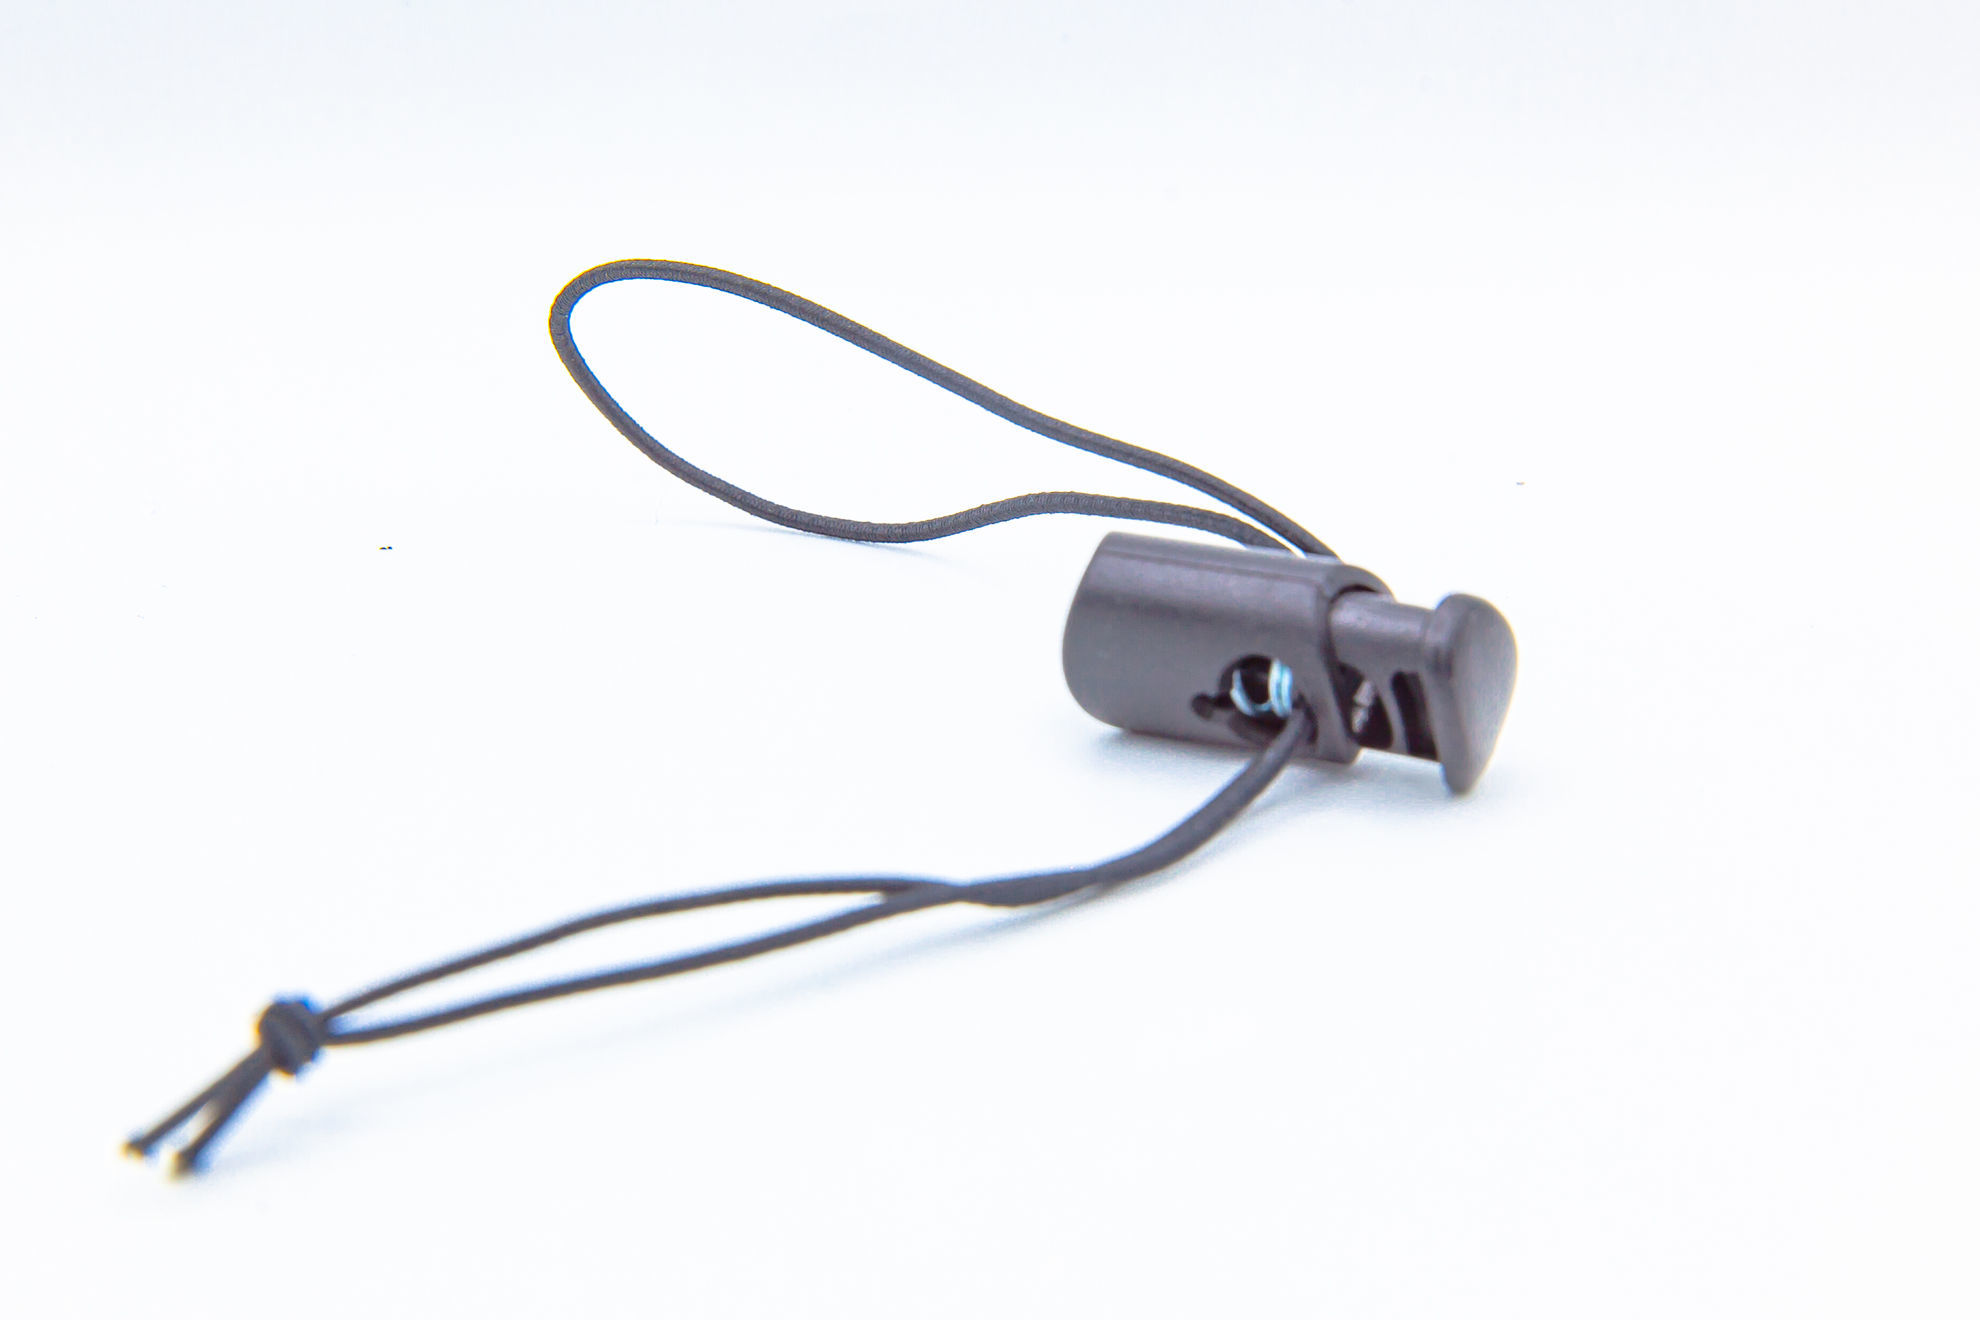 Picture of Wrist Safety Strap - Bulk